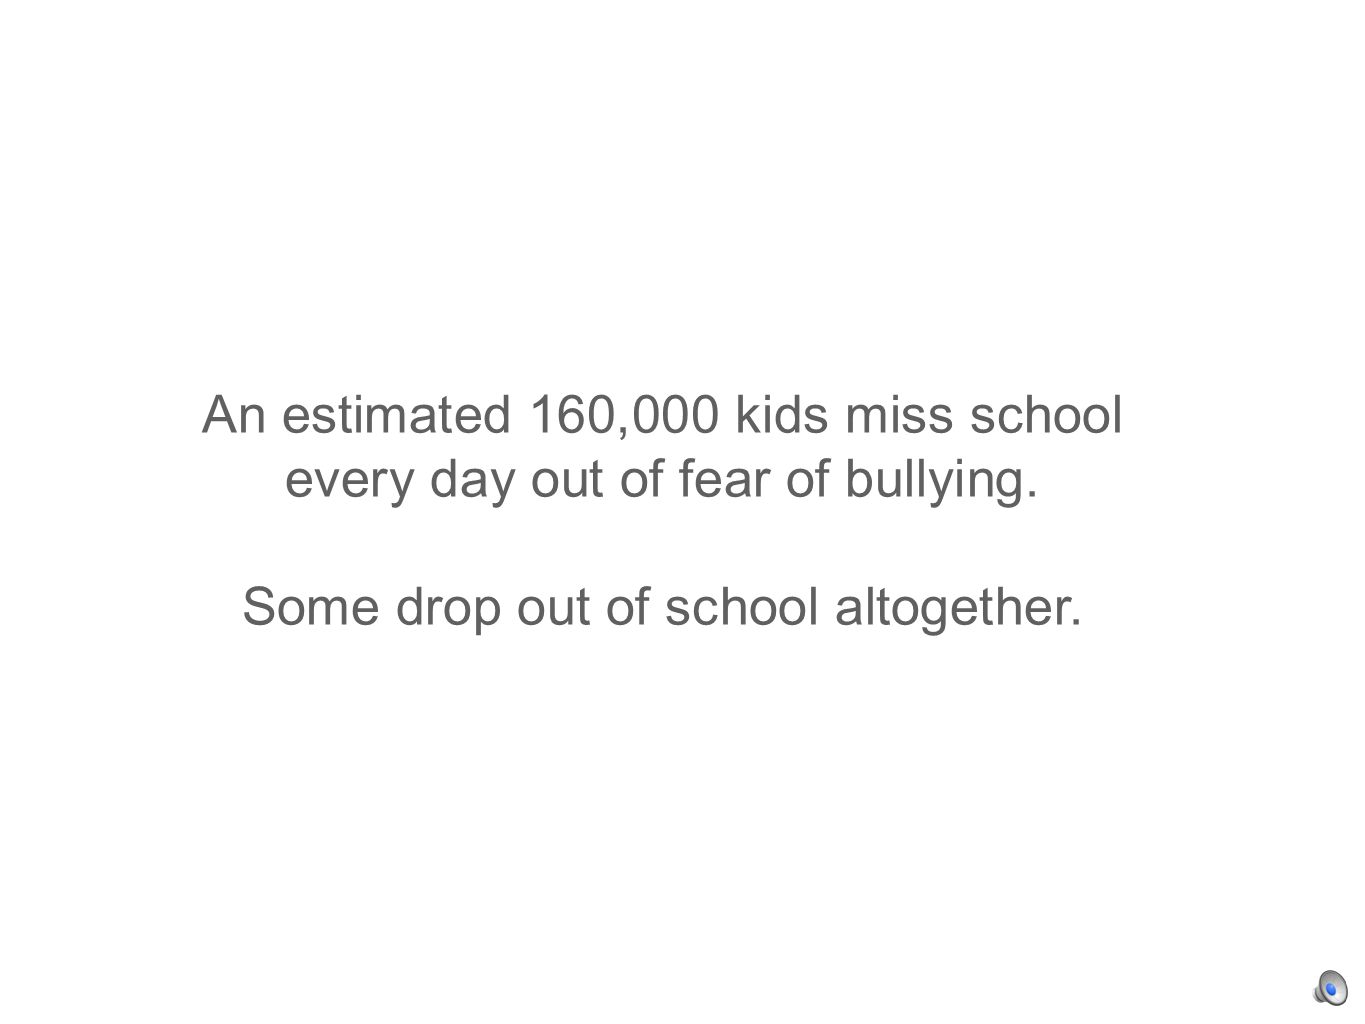 An estimated 160,000 kids miss school every day out of fear of bullying.